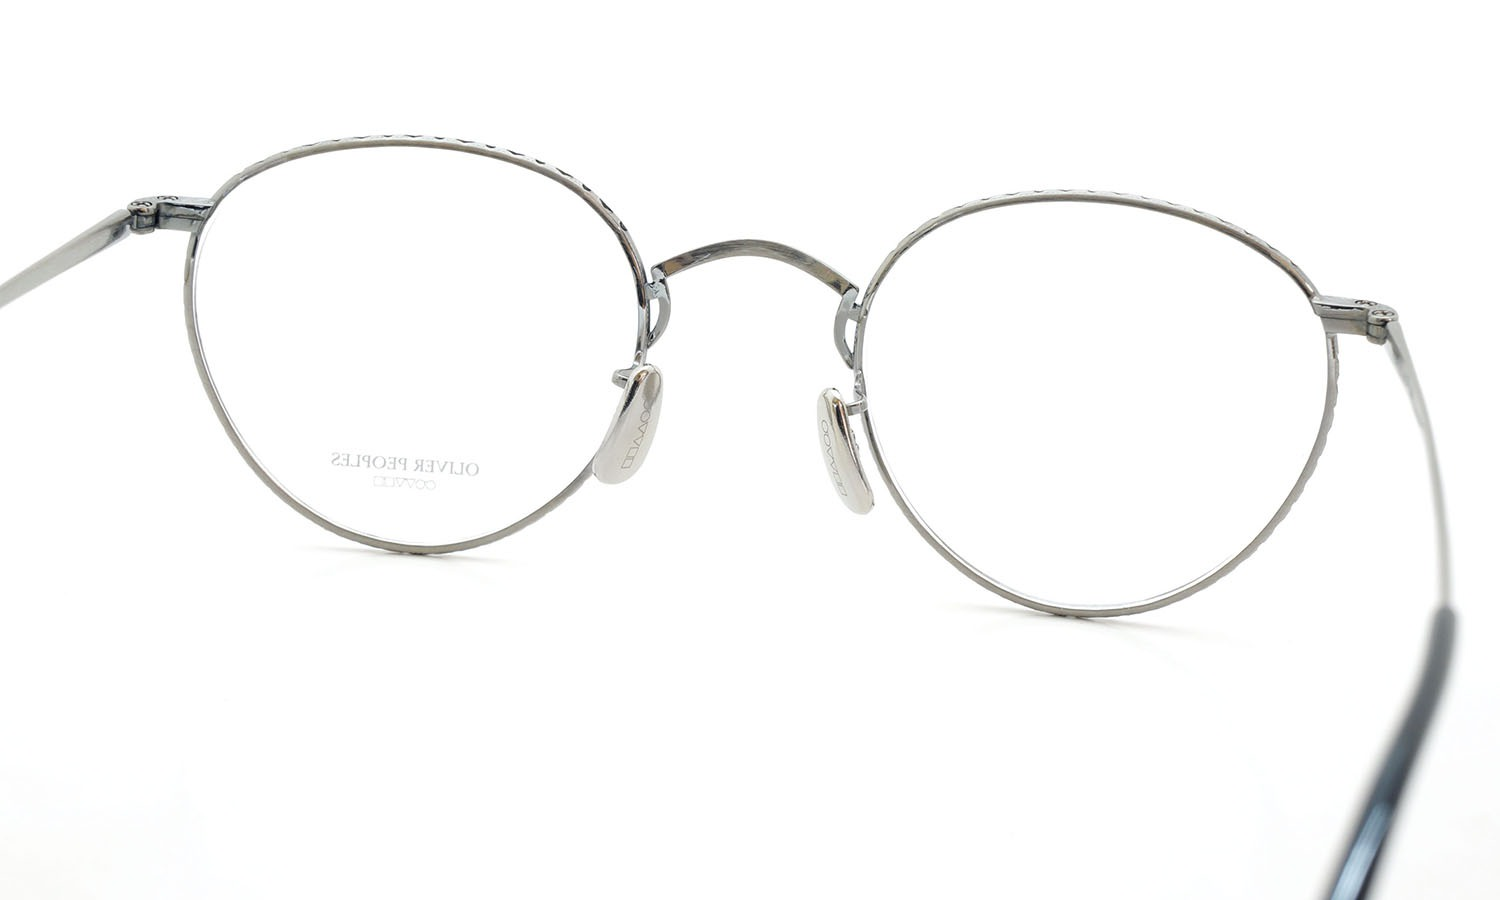 OLIVER PEOPLES (オリバーピープルズ) 2014年-2015秋冬 最新作メガネ OP-47T P ピューター 6